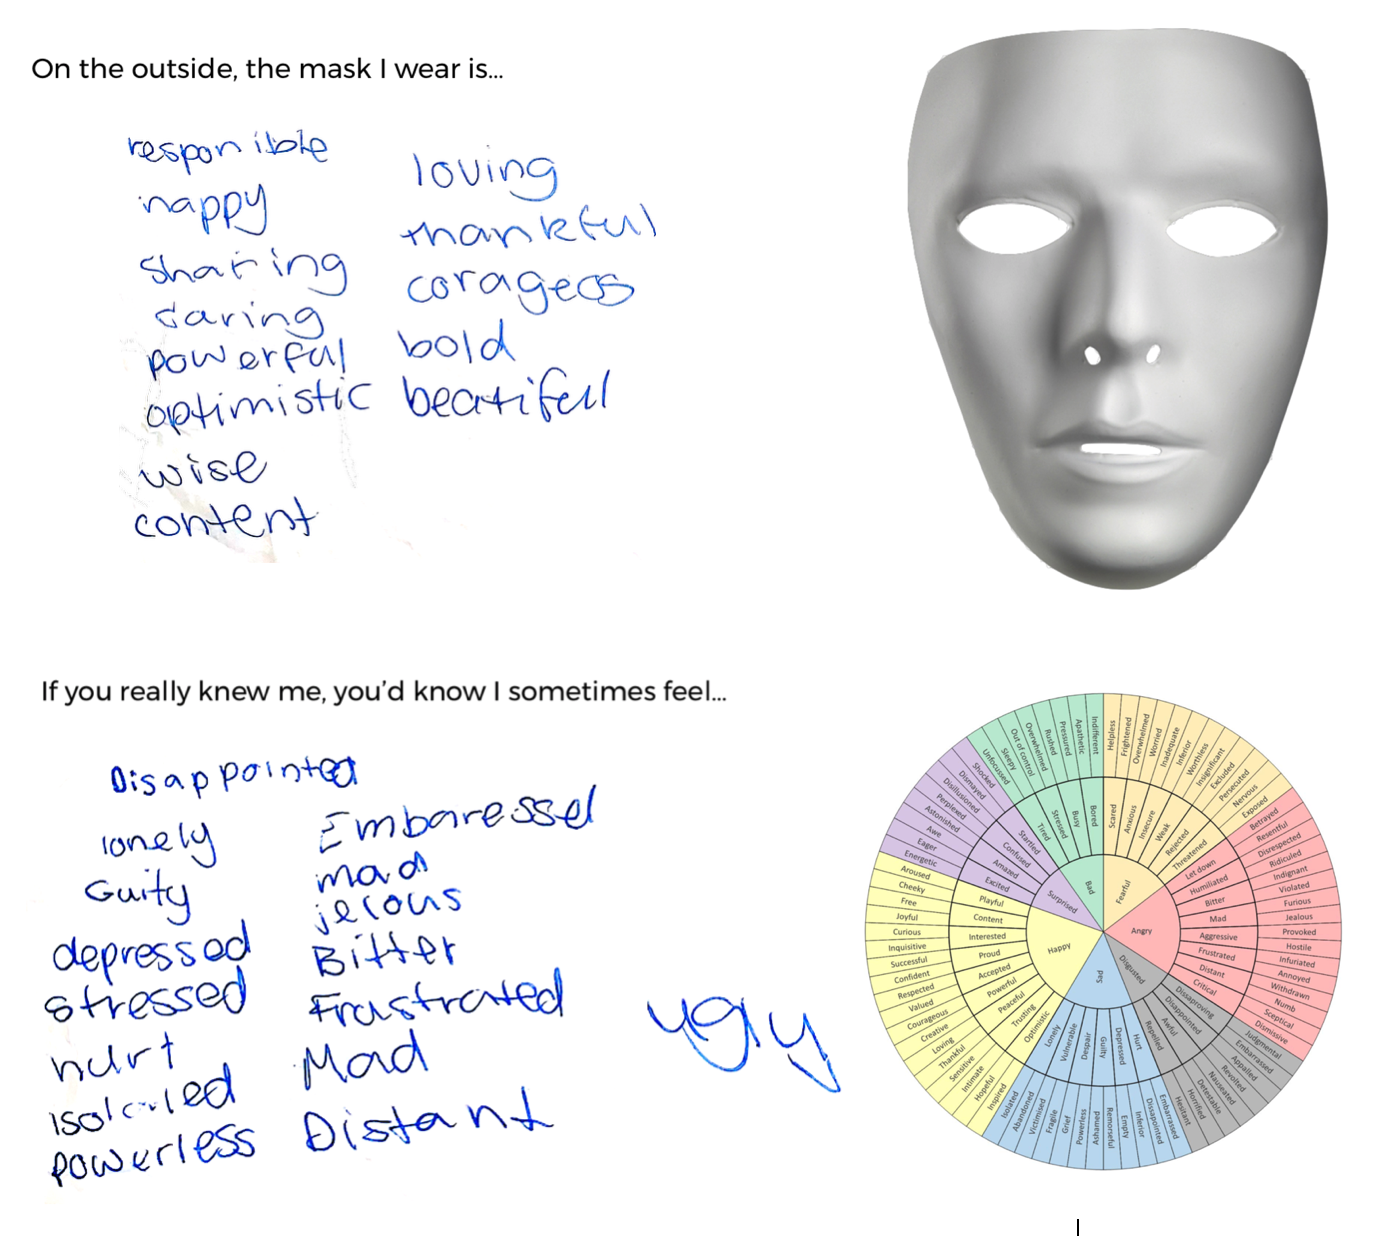 Here's an example of what one student wrote in our 'emotional mask' activity, where students think about what side of themselves they show on the outside to other people, and how it differs to how they really feel on the inside.